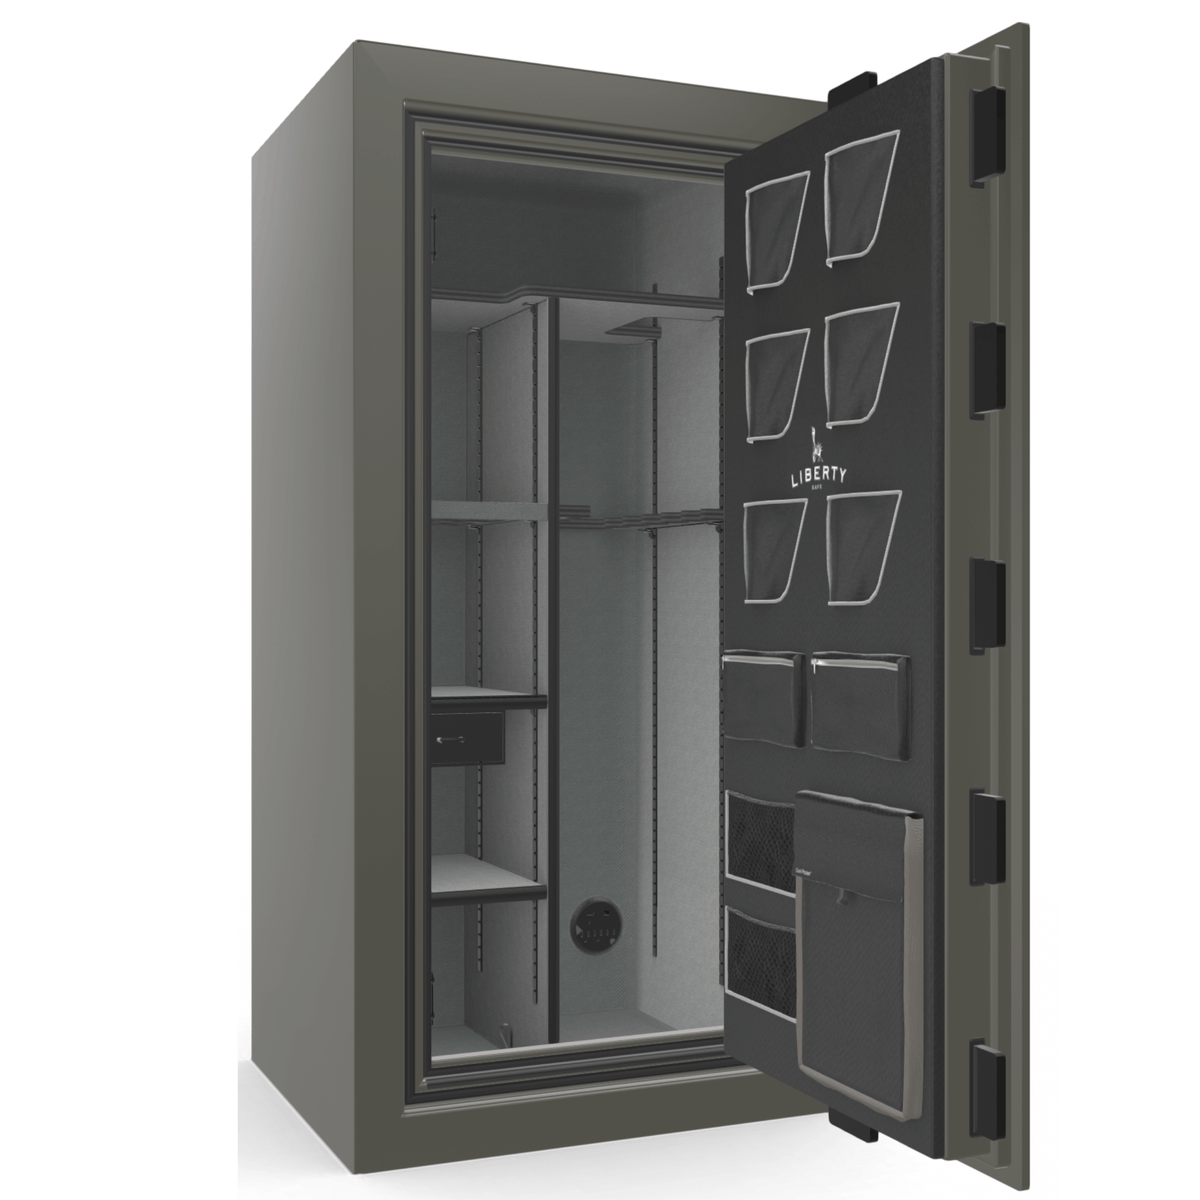 "Classic Plus | 25 | Level 7 Security | 110 Minute Fire Protection | Gray 2-Tone | Black Mechanical Lock | 60.5""(H) x 30""(W) x 29""(D)"